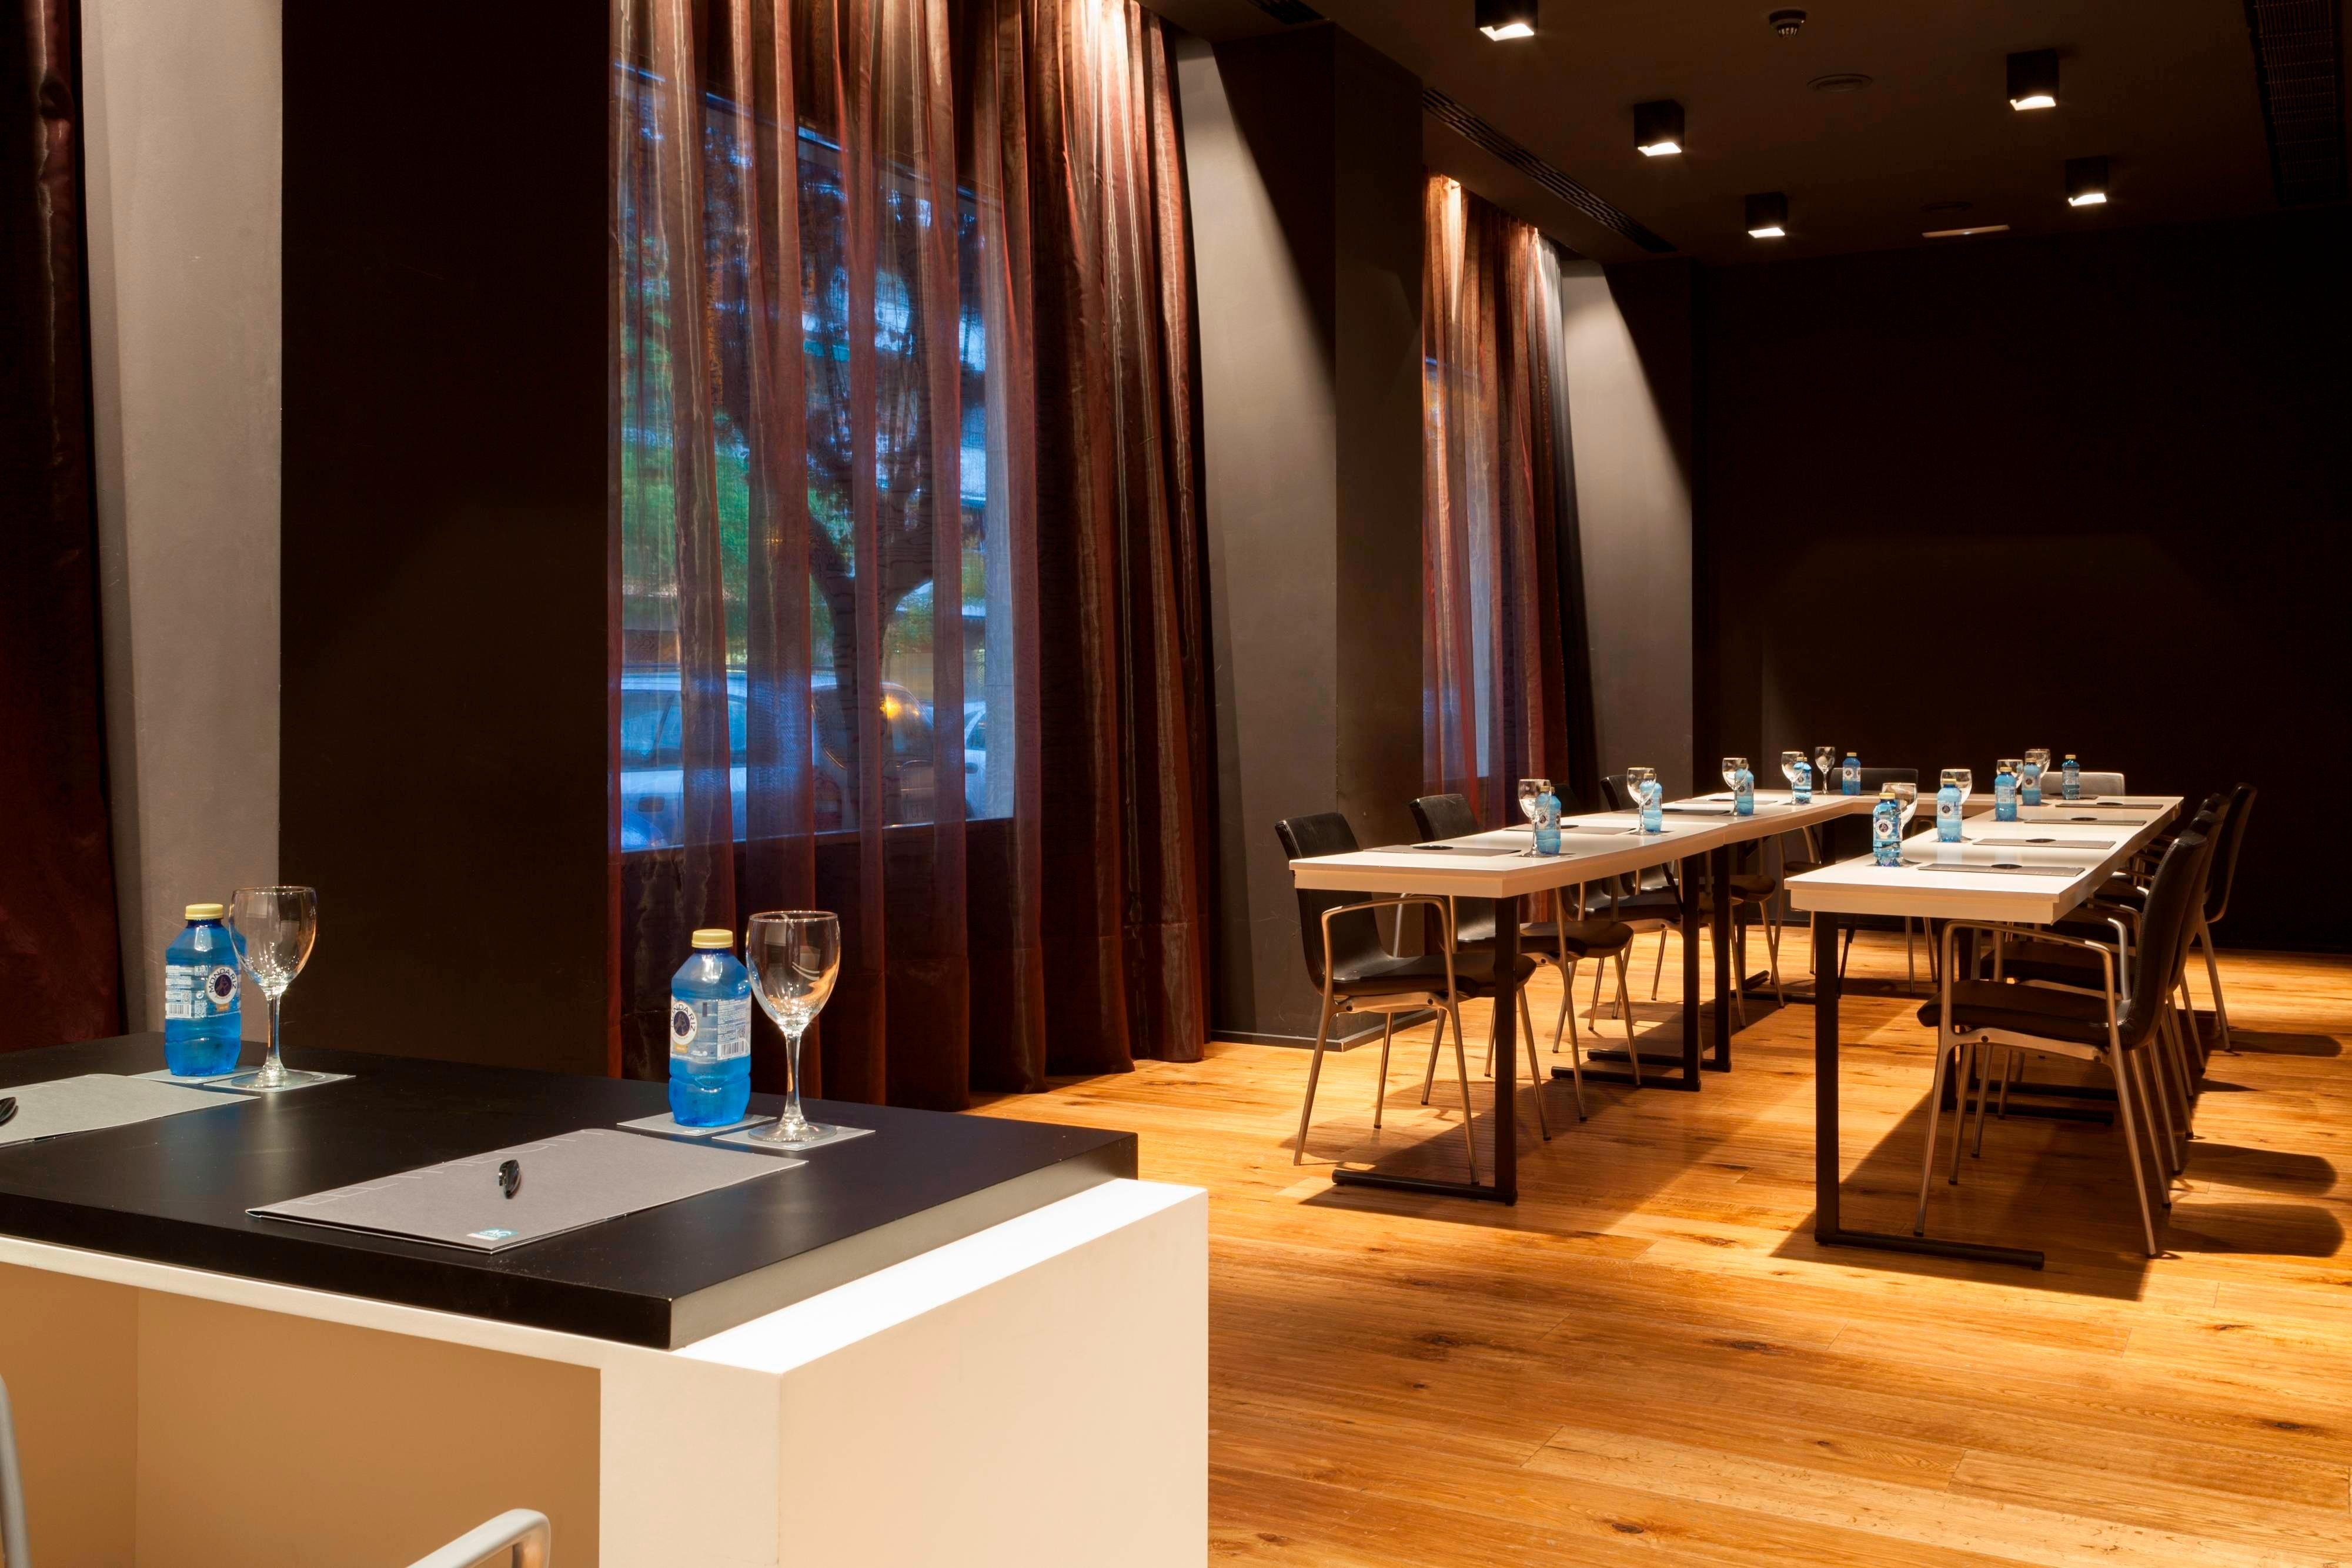 meeting rooms in Pamplona hotel